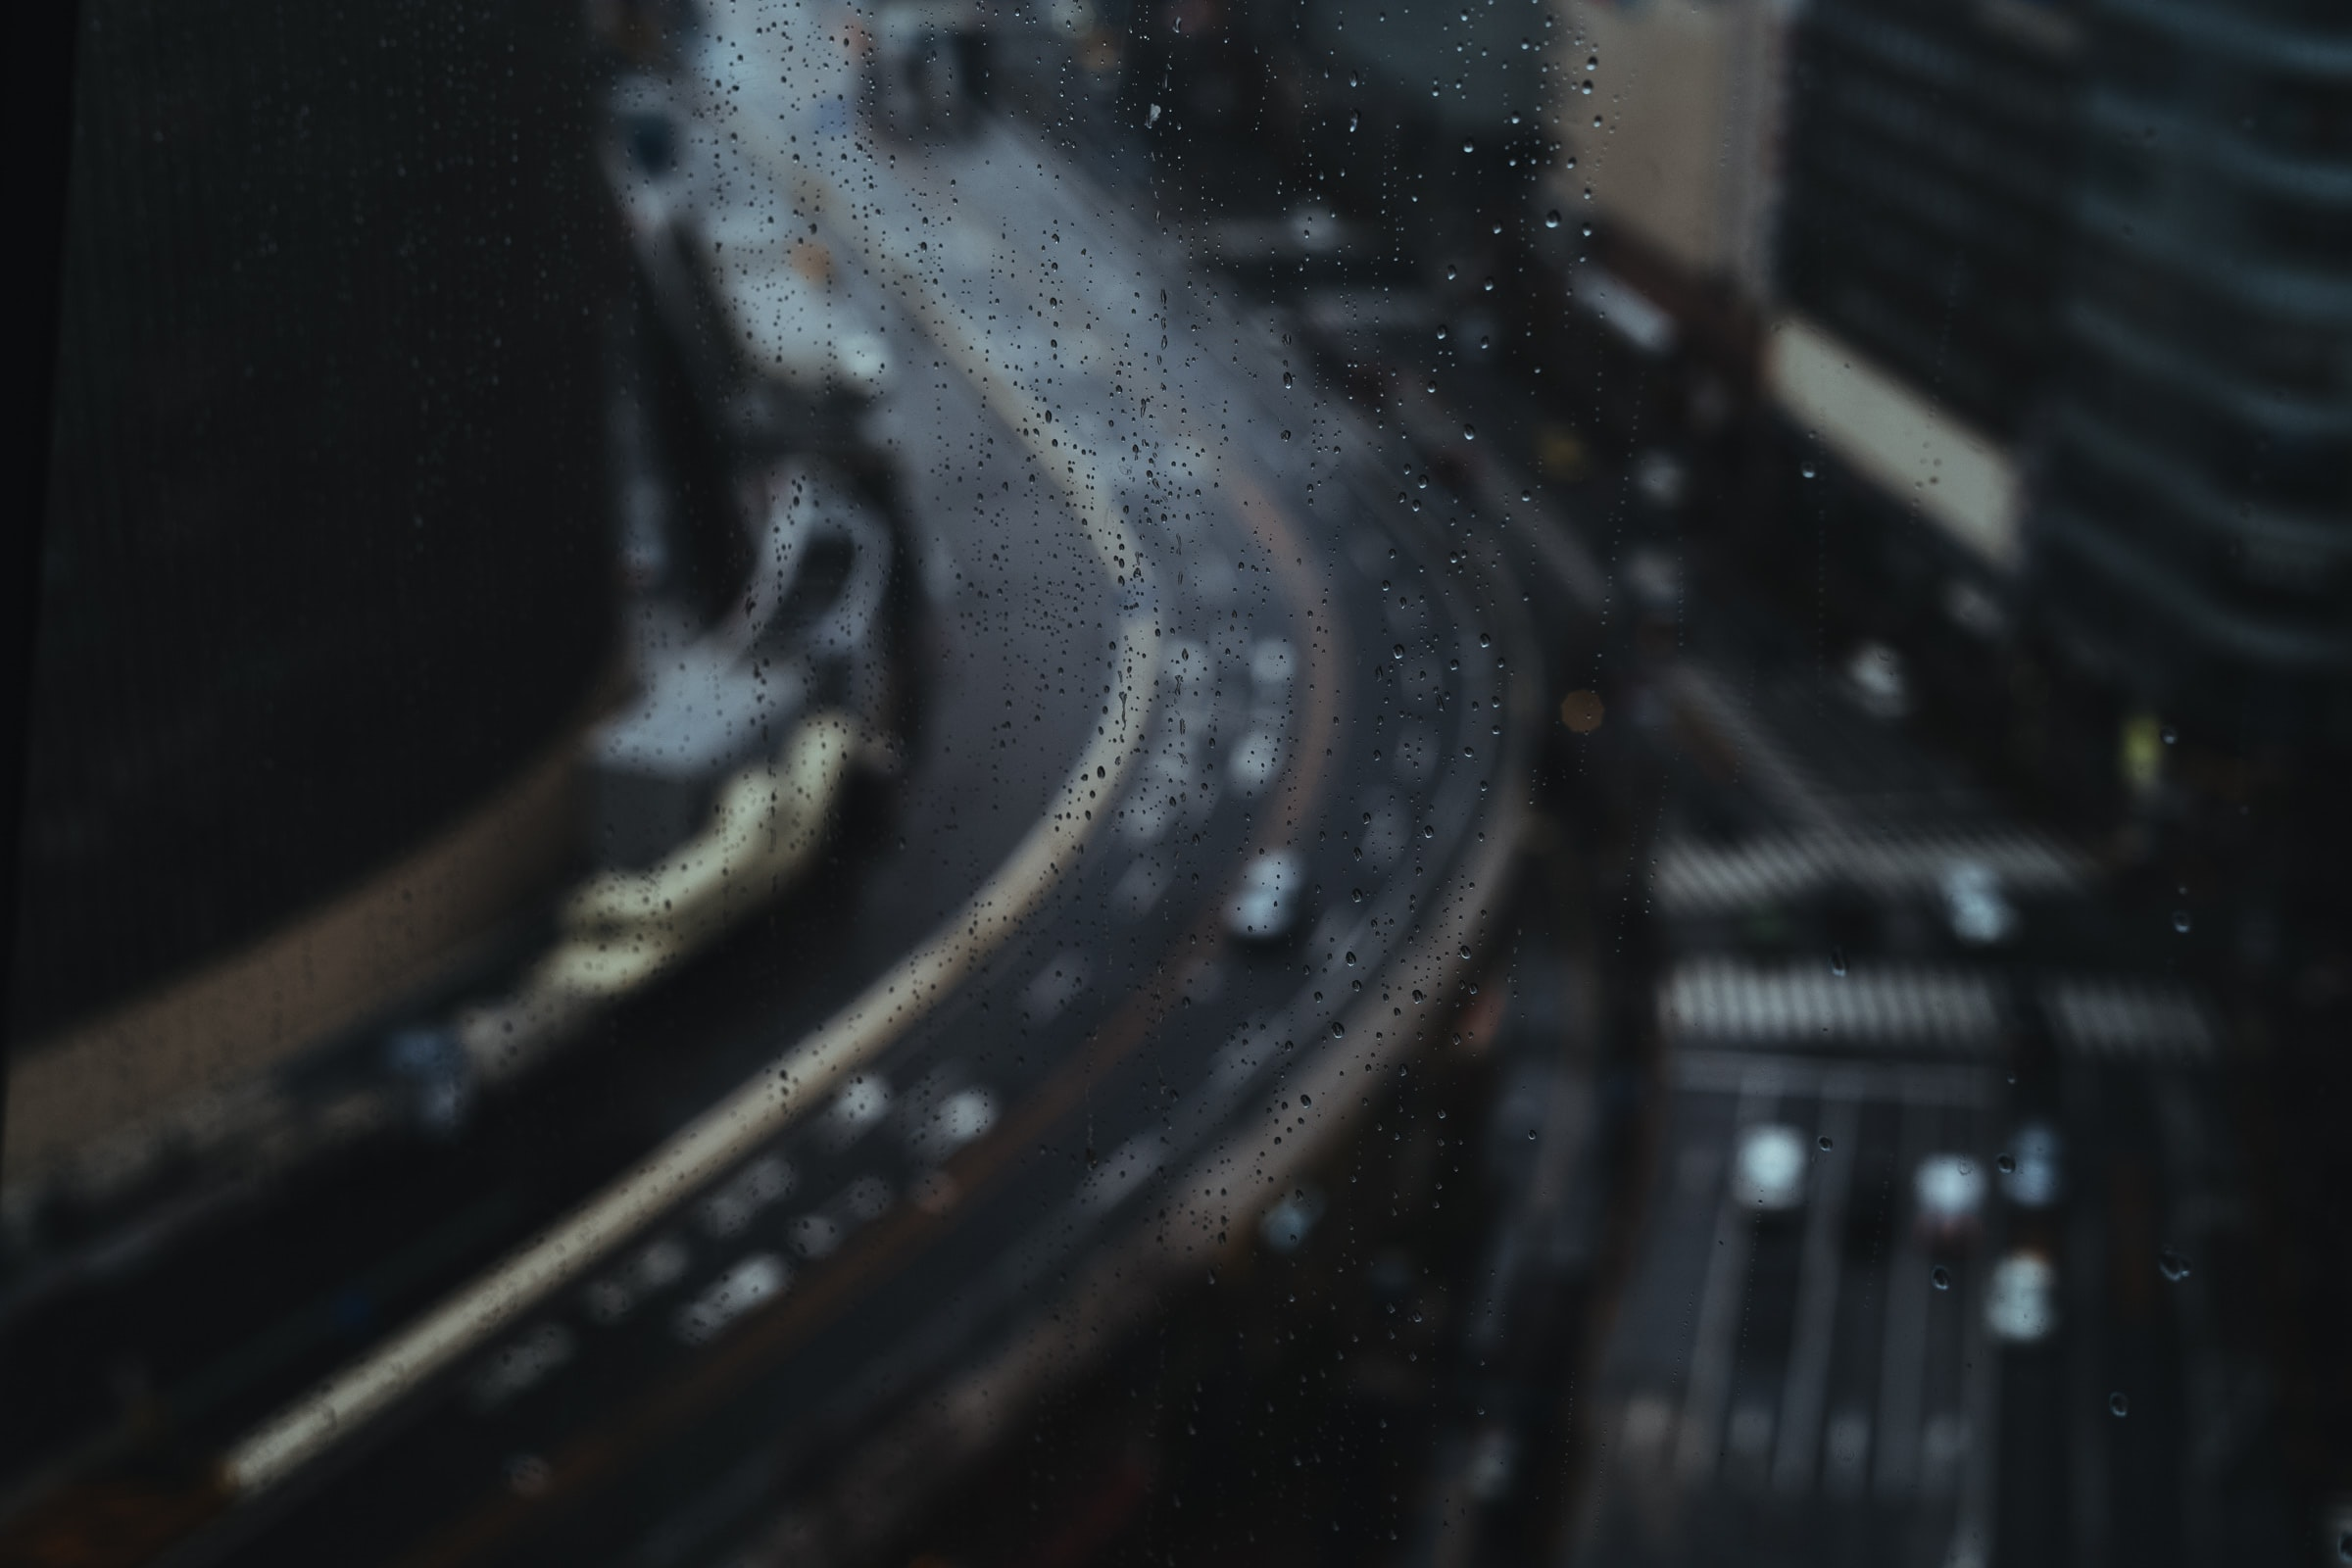 aerial photograph of a city road